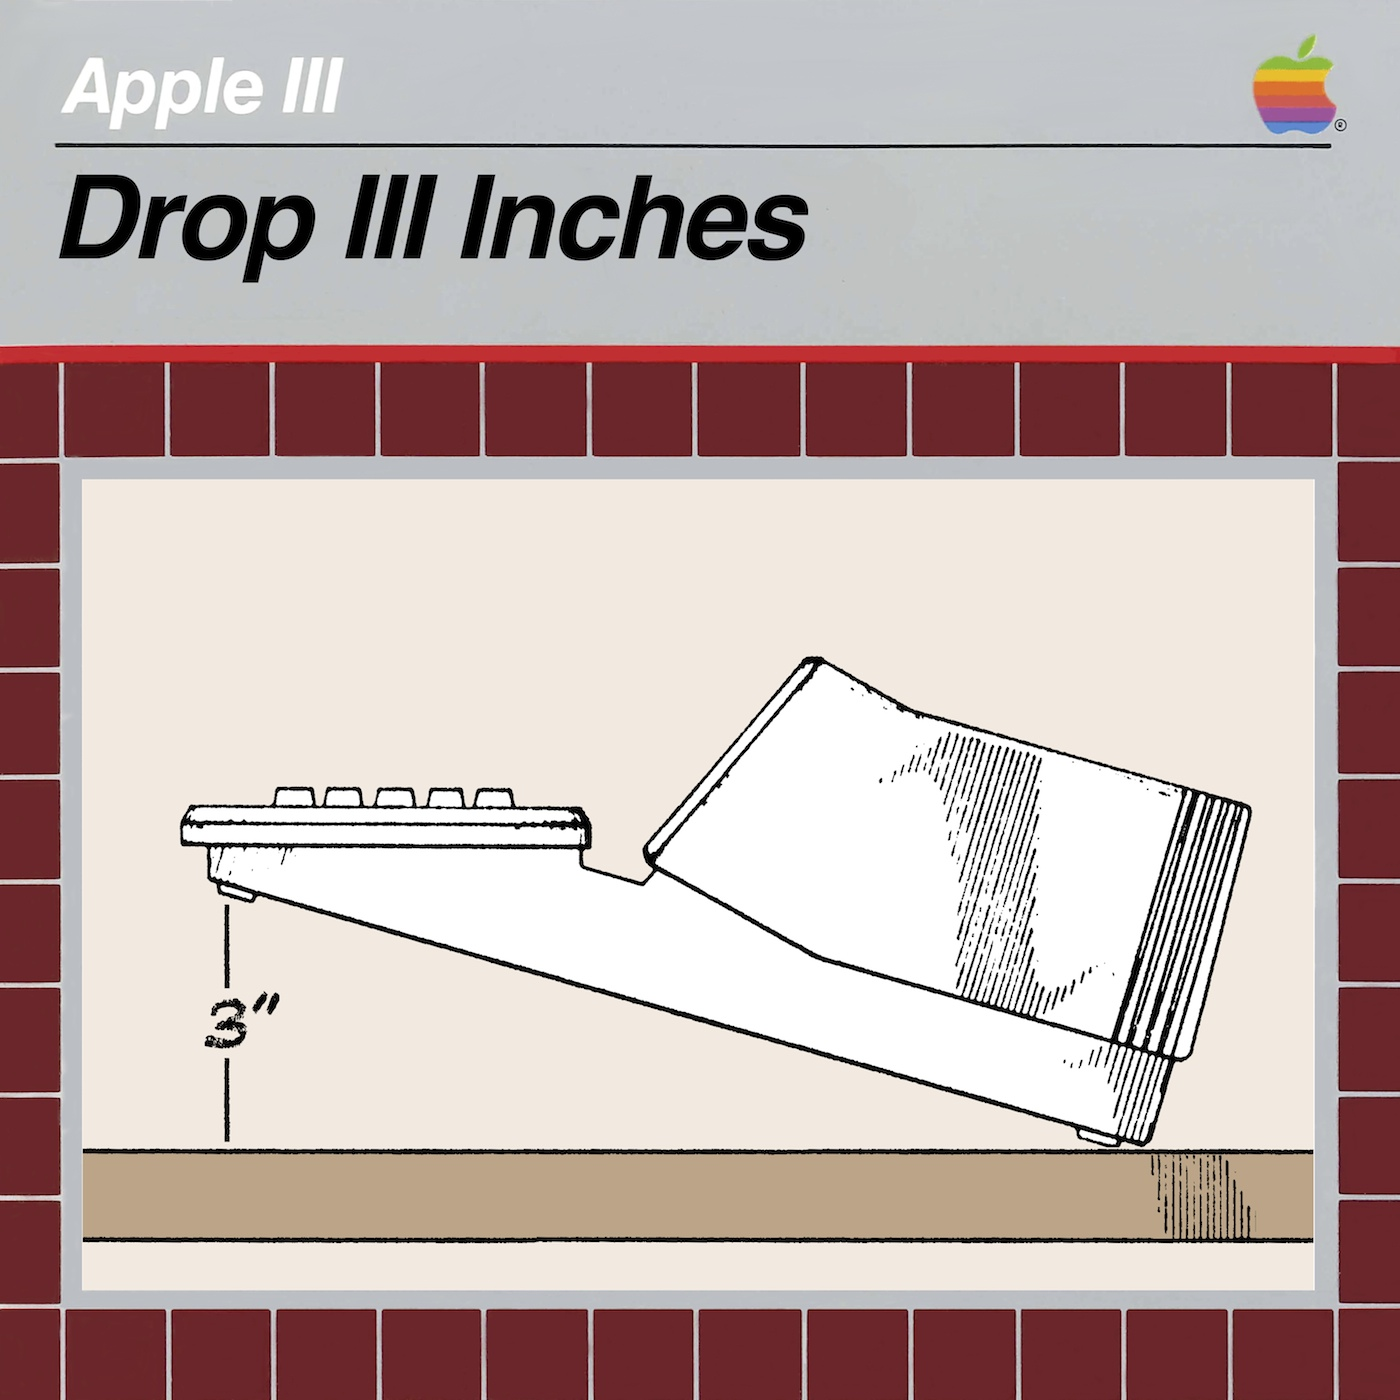 Drop III Inches